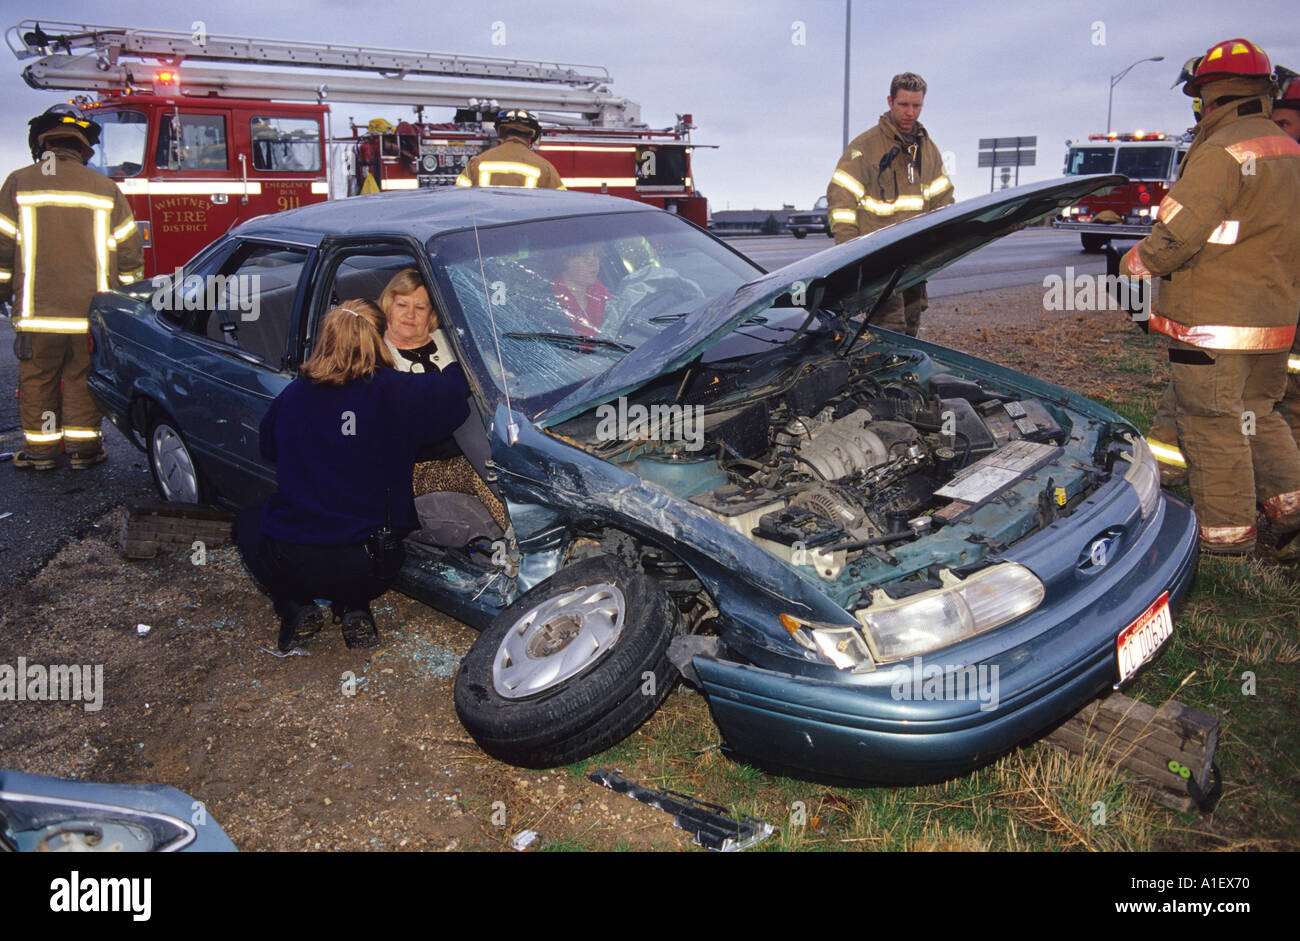 Firefighters assist in the aftermath of an automobile accident  - Stock Image